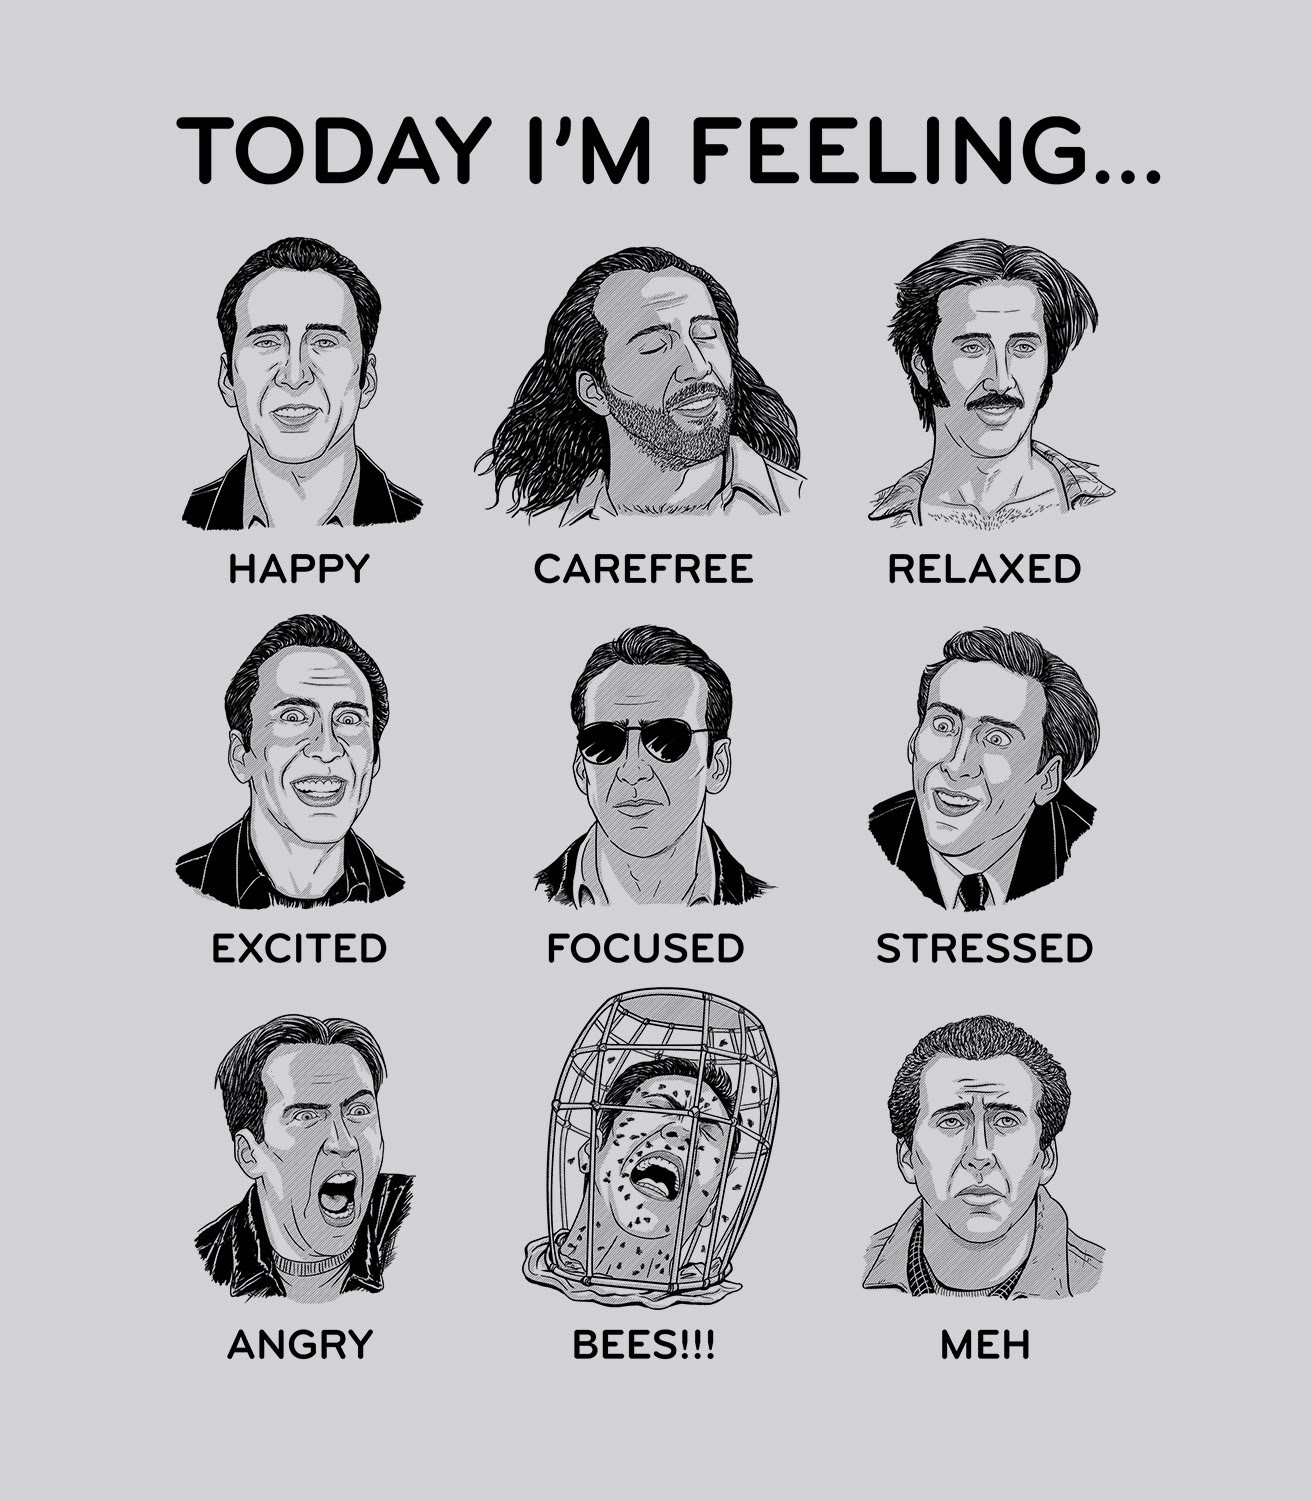 Which Nic Cage are you? Today I'm feeling....